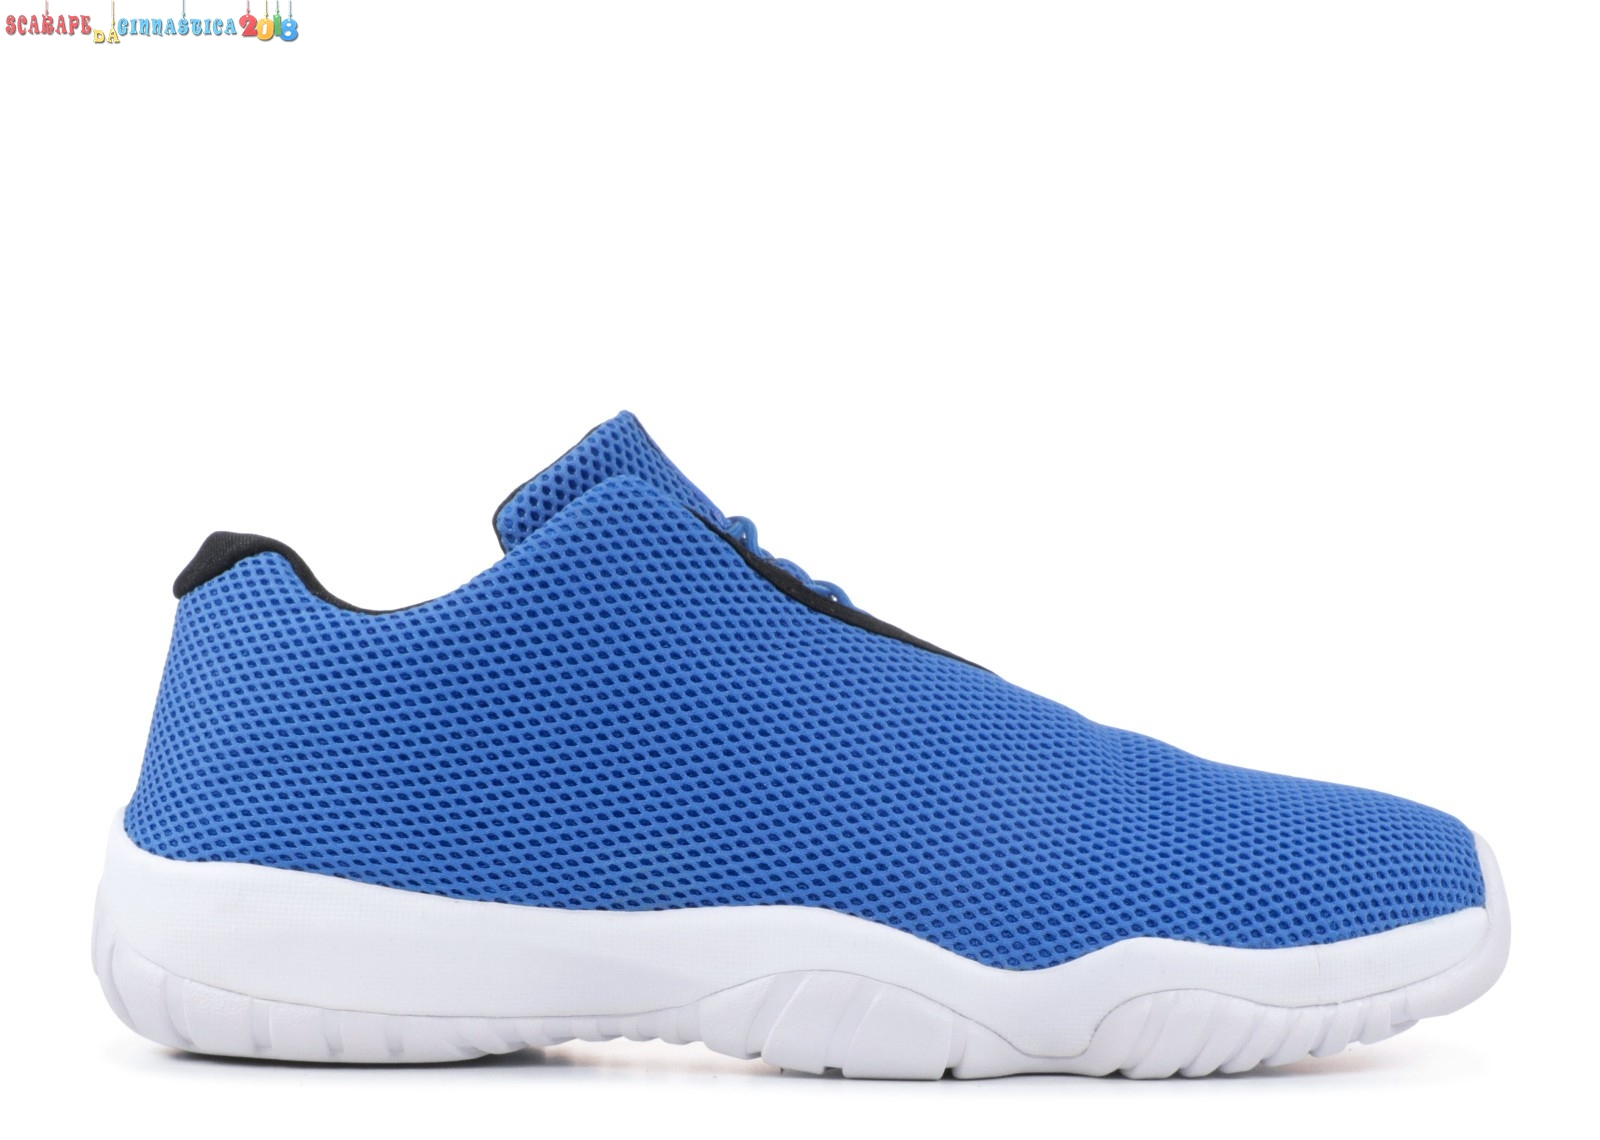 Buy Air Jordan Future Low Blu Bianca 3 (718948-400) - Uomo - Scarpe da basket